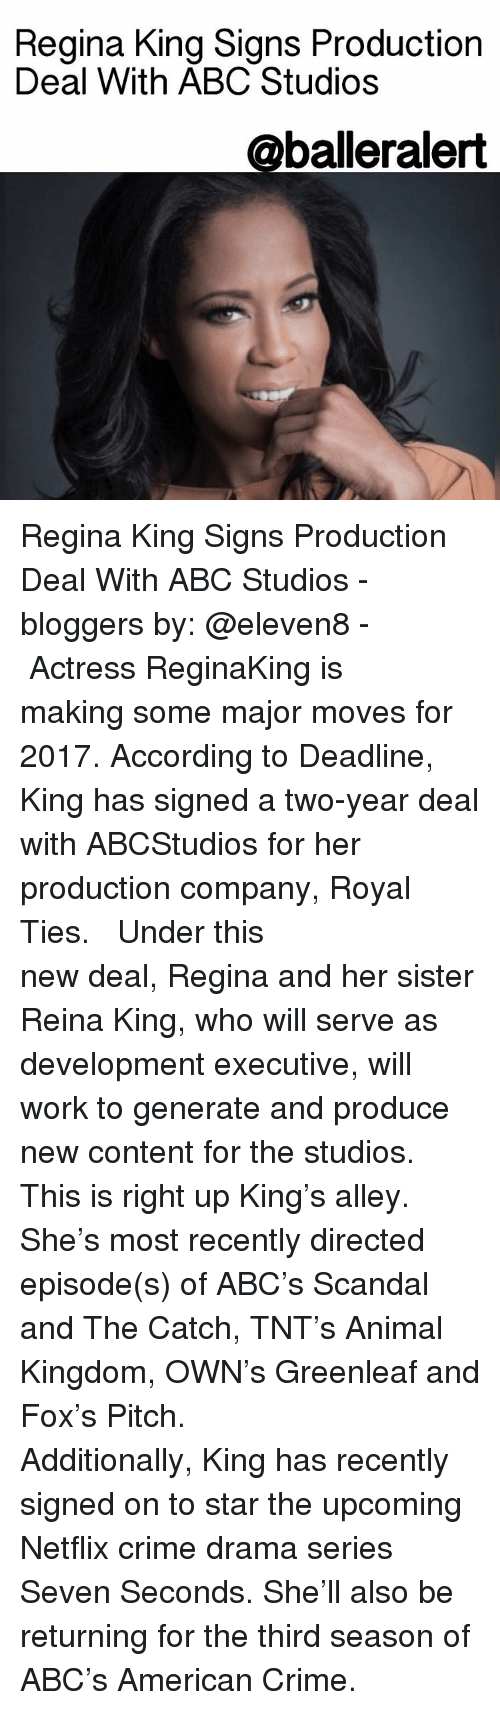 Abc, Memes, and Blogger: Regina King Signs Production  Deal With ABC Studios  Caballeralert Regina King Signs Production Deal With ABC Studios - bloggers by: @eleven8 - ⠀⠀⠀⠀⠀⠀⠀⠀⠀ ⠀⠀⠀⠀⠀⠀⠀⠀⠀ Actress ReginaKing is making some major moves for 2017. According to Deadline, King has signed a two-year deal with ABCStudios for her production company, Royal Ties. ⠀⠀⠀⠀⠀⠀⠀⠀⠀ ⠀⠀⠀⠀⠀⠀⠀⠀⠀ Under this new deal, Regina and her sister Reina King, who will serve as development executive, will work to generate and produce new content for the studios. This is right up King's alley. She's most recently directed episode(s) of ABC's Scandal and The Catch, TNT's Animal Kingdom, OWN's Greenleaf and Fox's Pitch. ⠀⠀⠀⠀⠀⠀⠀⠀⠀ ⠀⠀⠀⠀⠀⠀⠀⠀⠀ Additionally, King has recently signed on to star the upcoming Netflix crime drama series Seven Seconds. She'll also be returning for the third season of ABC's American Crime.